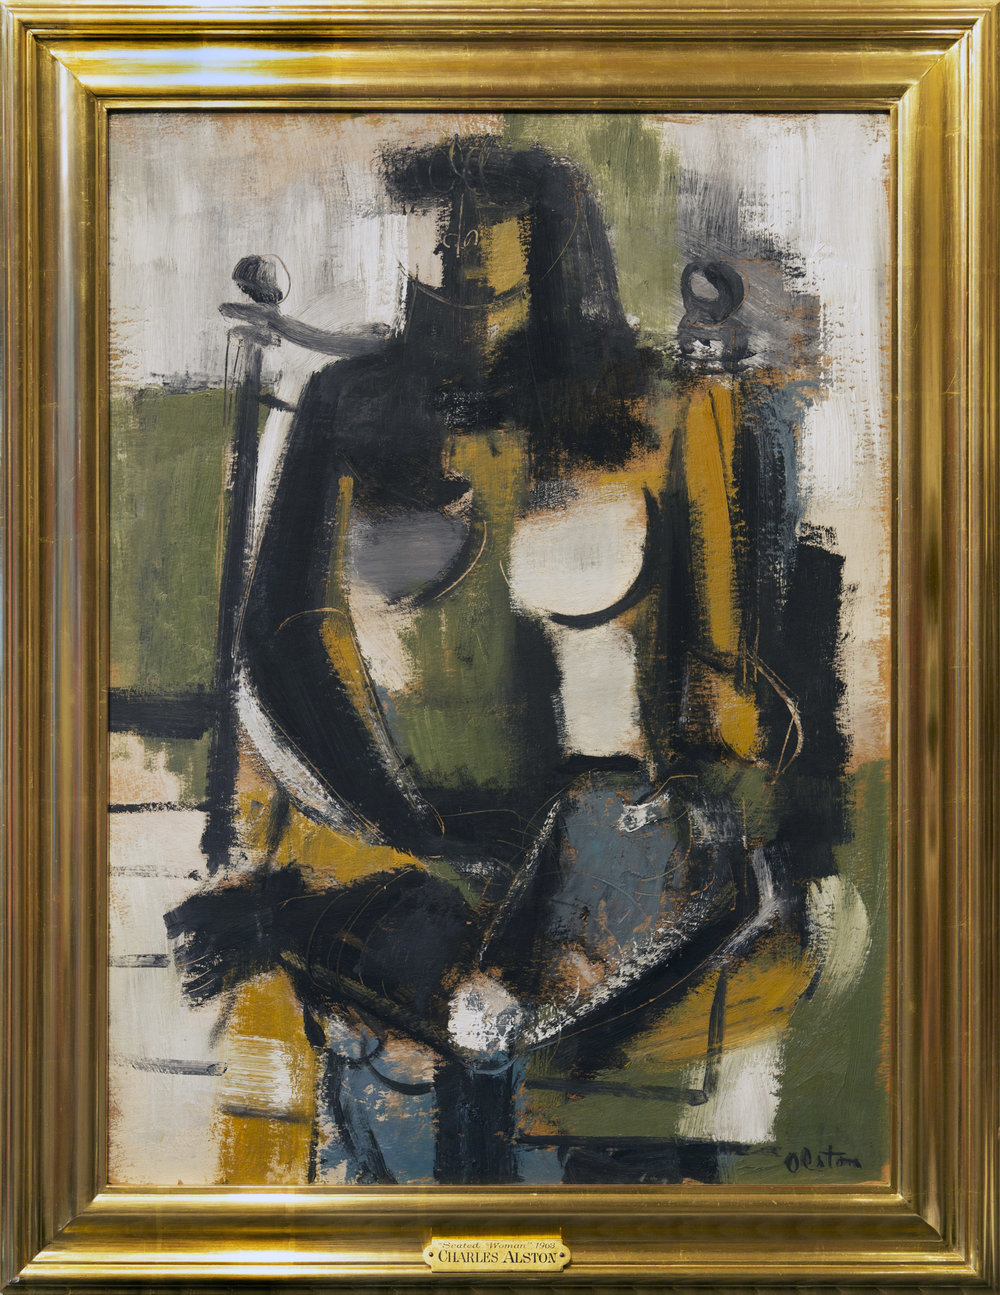 SOLD   Seated Woman, 1963 , oil on board, 25 3/4 x 18 7/8 inches